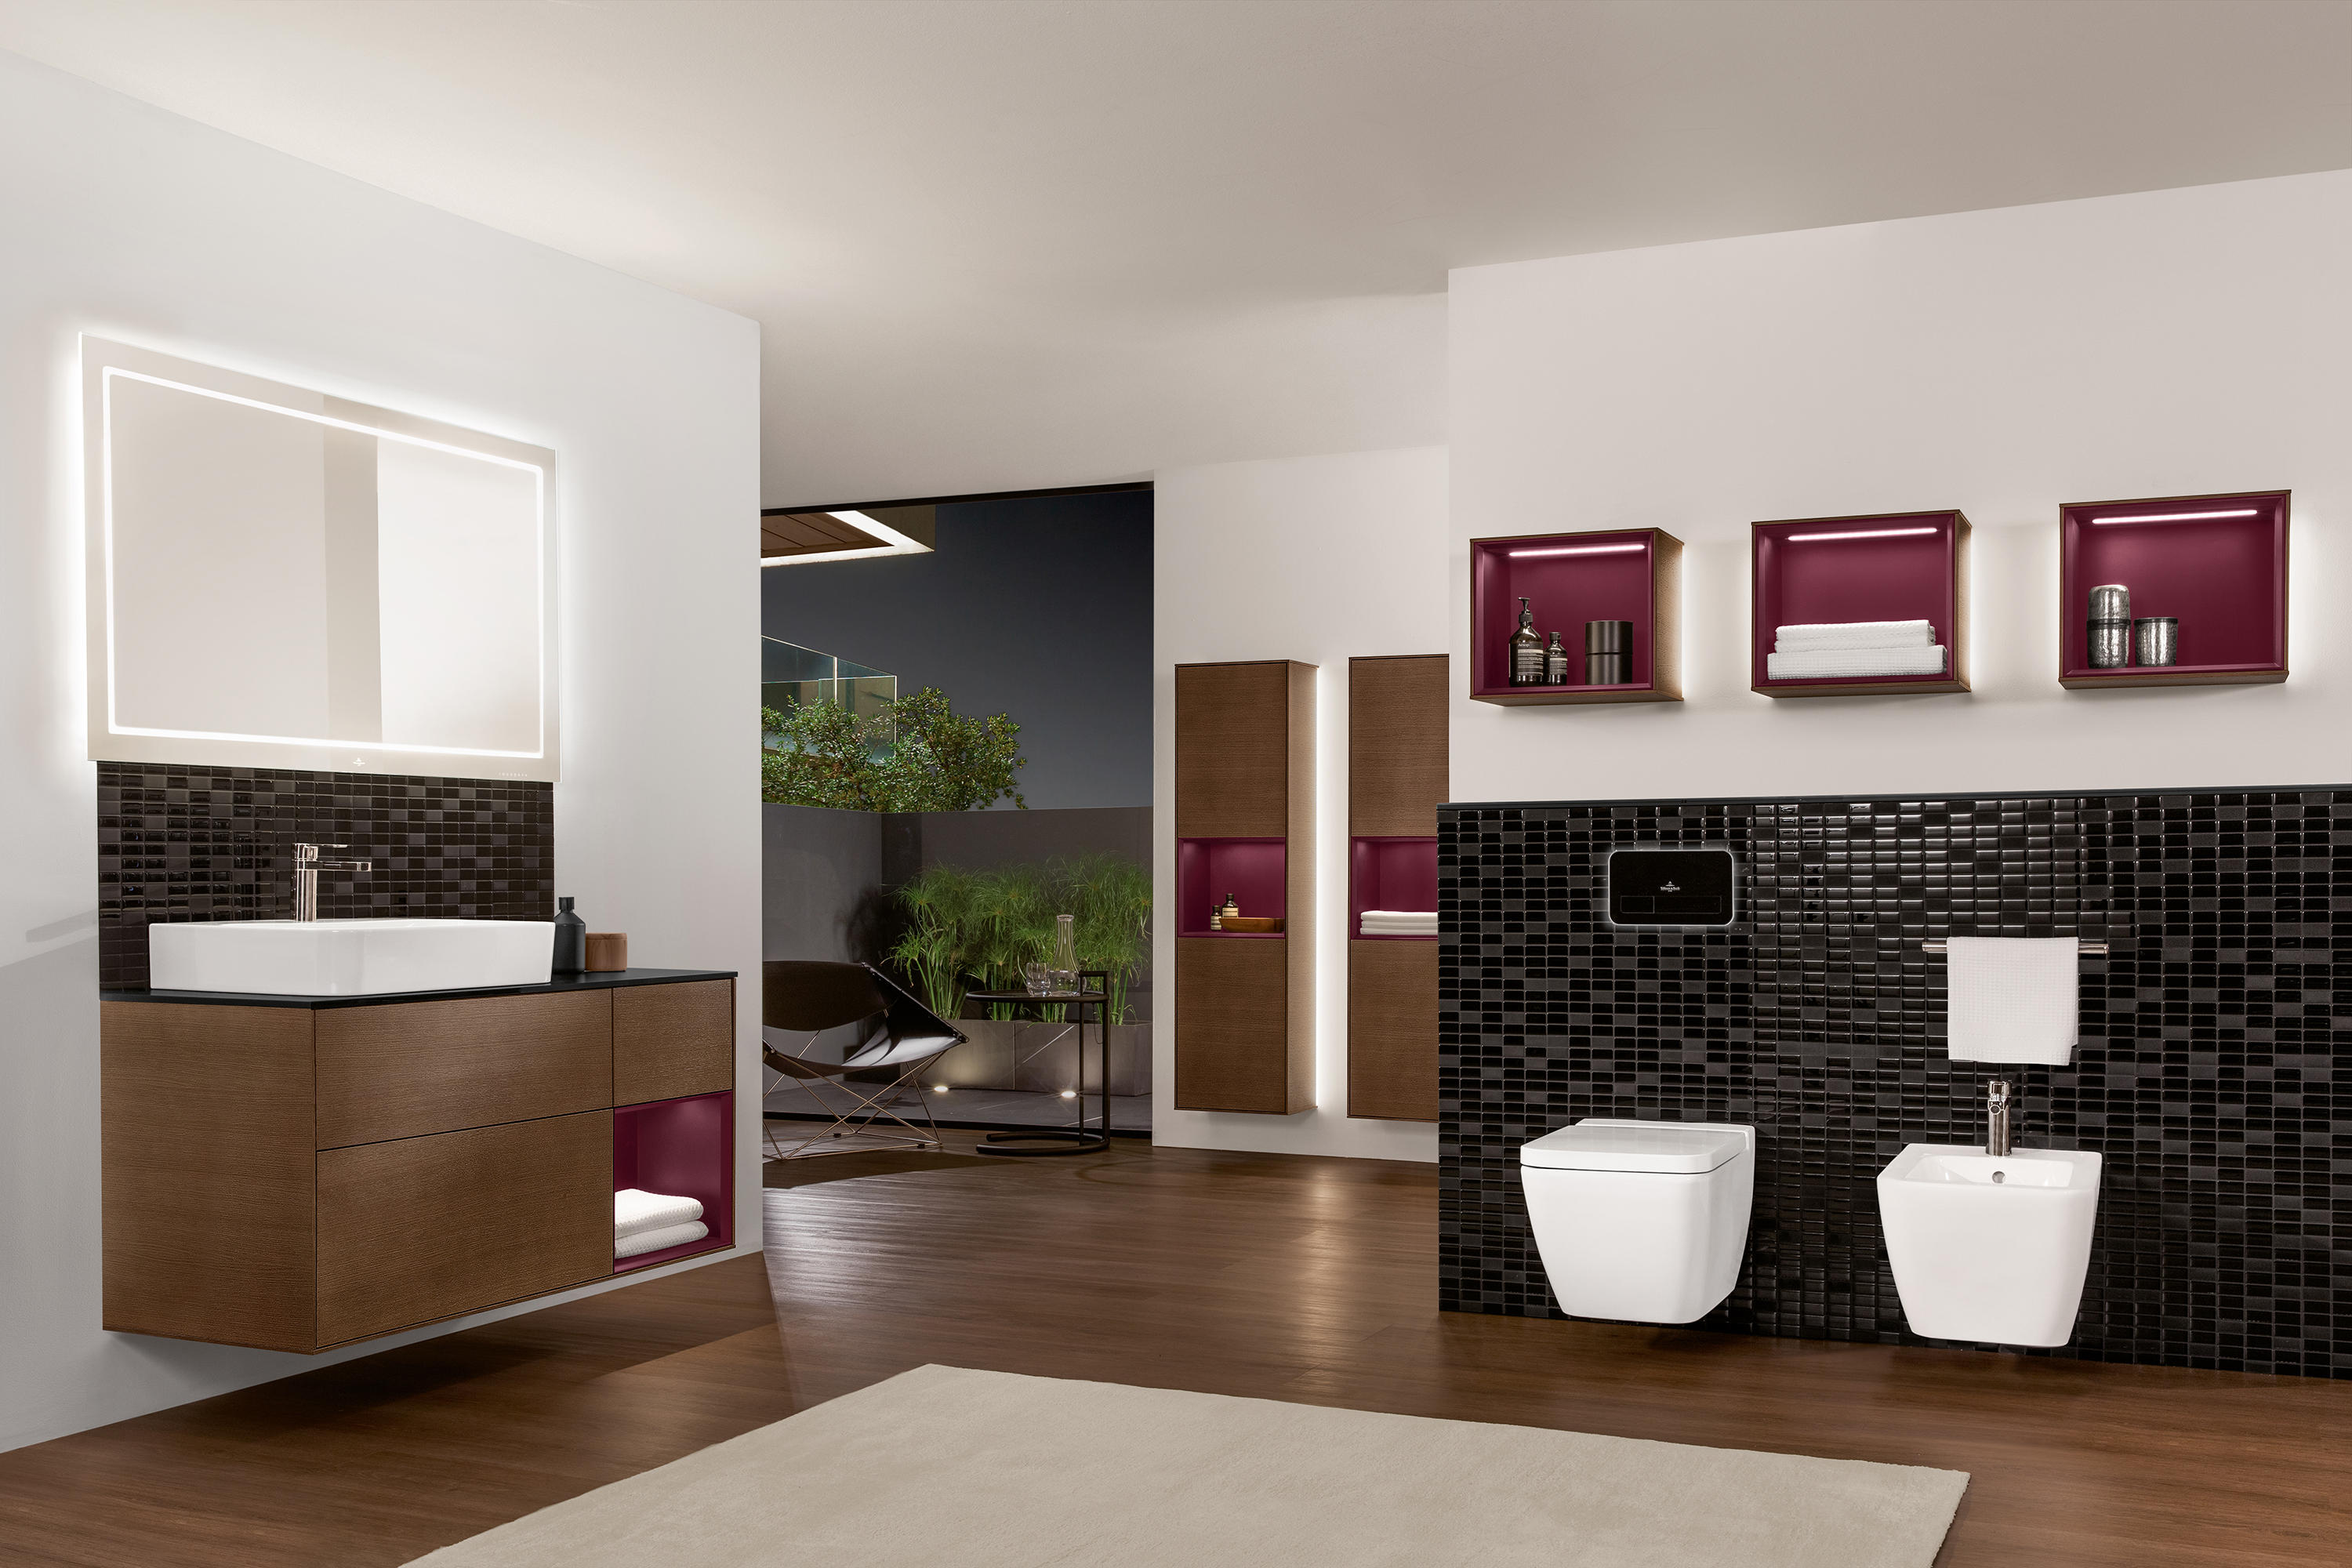 finion 4139d2 wash basins from villeroy boch architonic. Black Bedroom Furniture Sets. Home Design Ideas